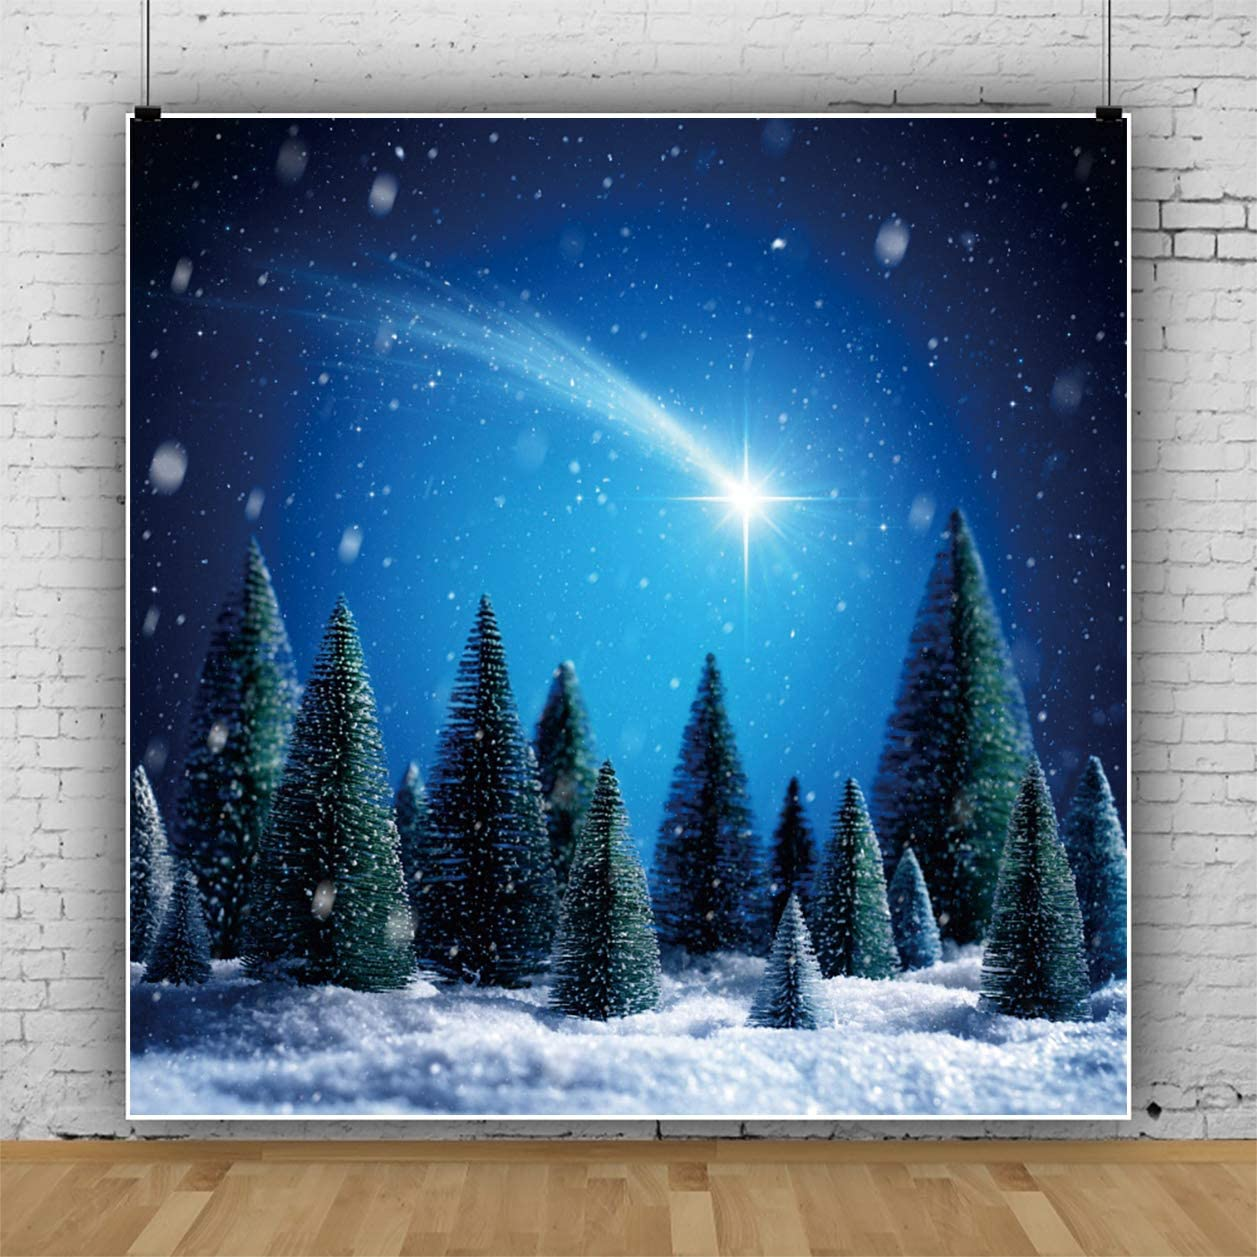 YEELE Night Winter Landscape Backdrop Comets Streaked Across The Sky Photography Background 9x9ft Christmas New Year Indoor Photo Portrait Booth Shooting Vinyl Cloth Studio Props